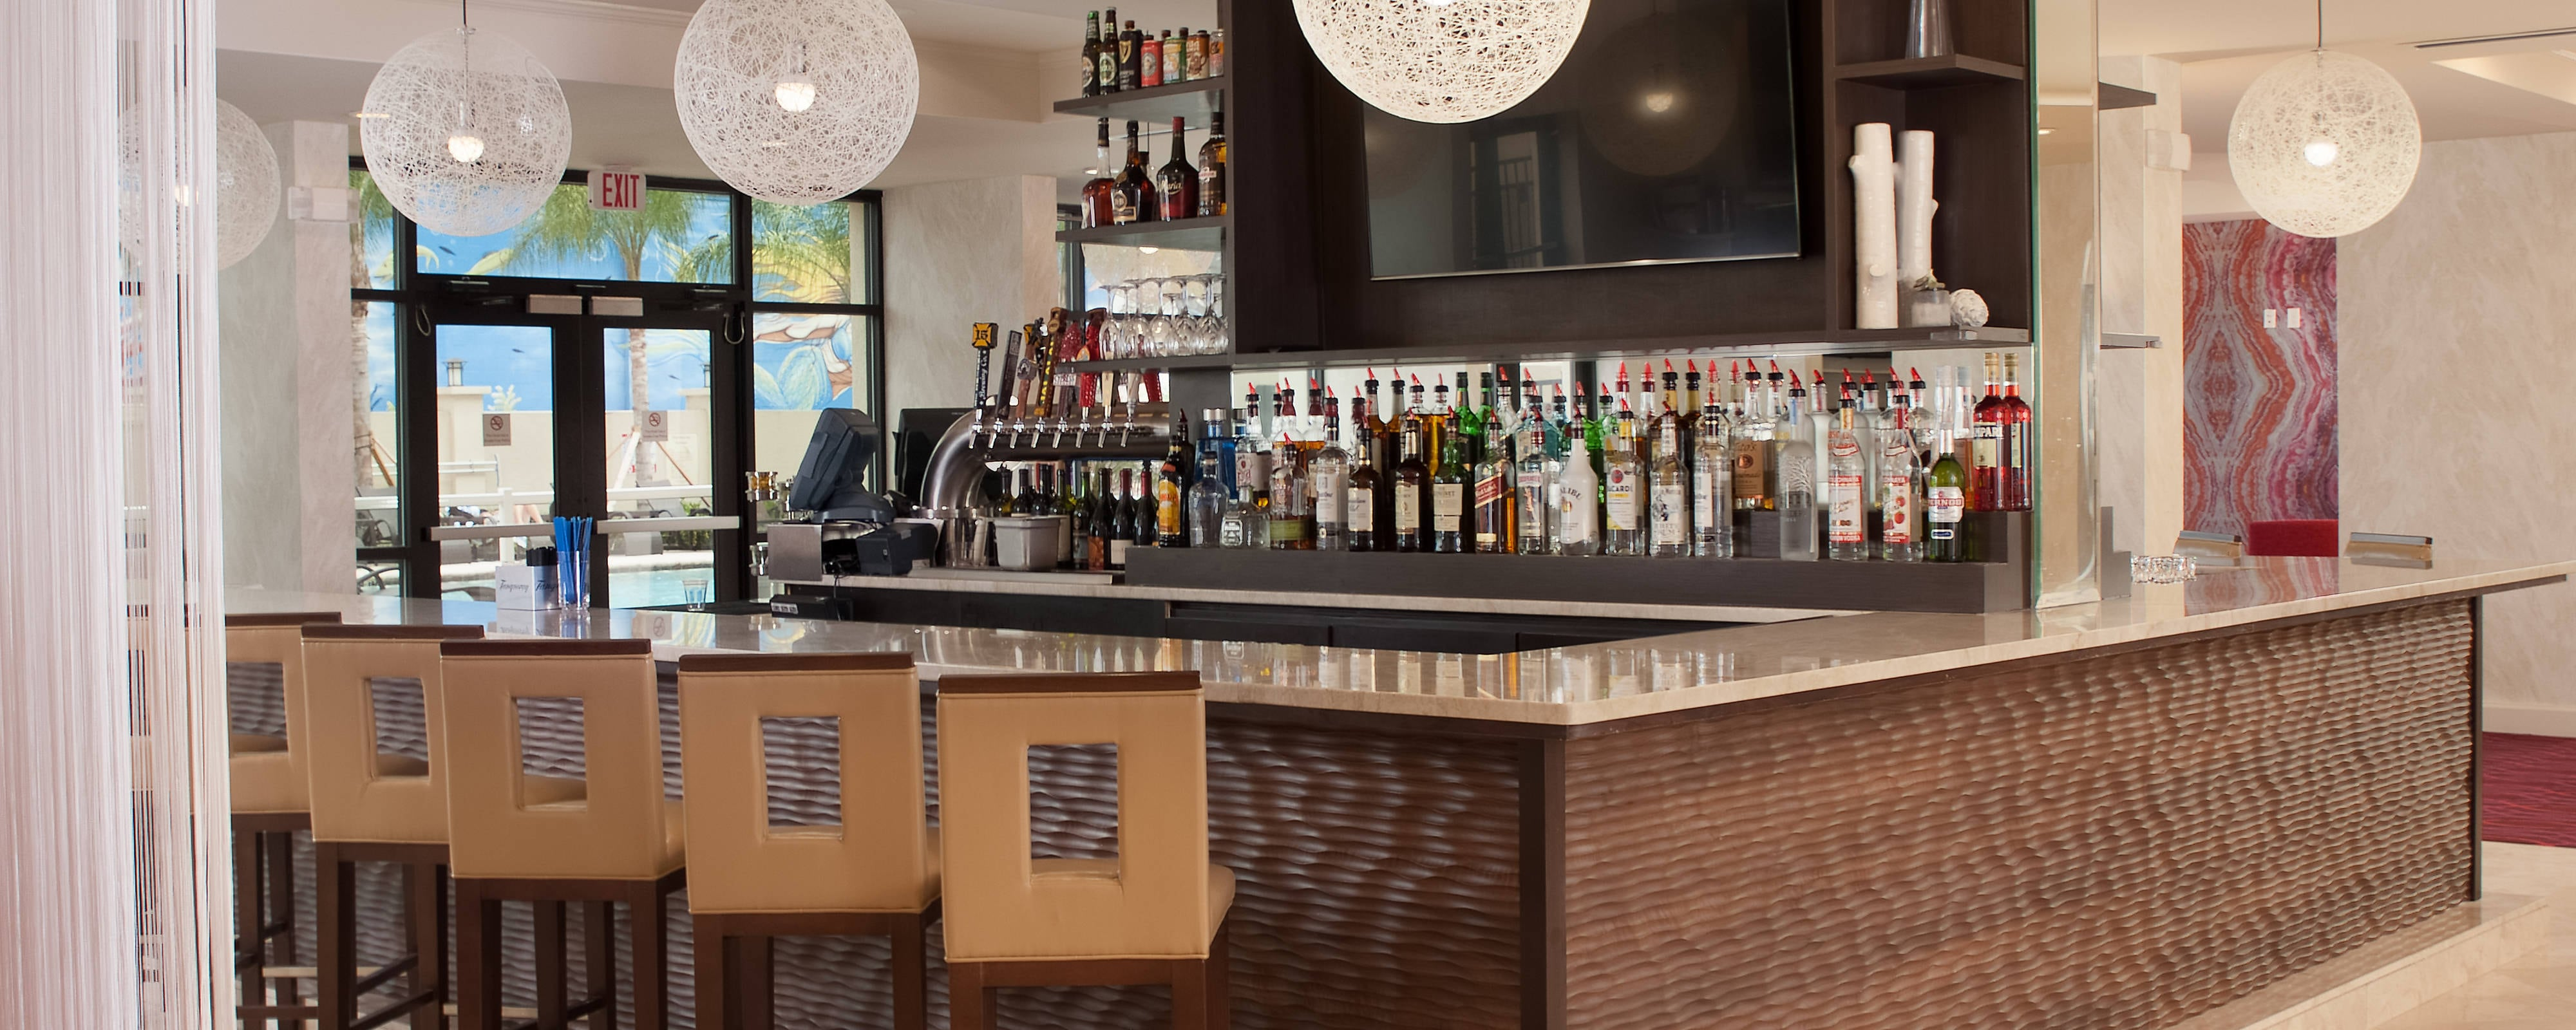 hotels close to disney world with a restaurant and bar. Black Bedroom Furniture Sets. Home Design Ideas